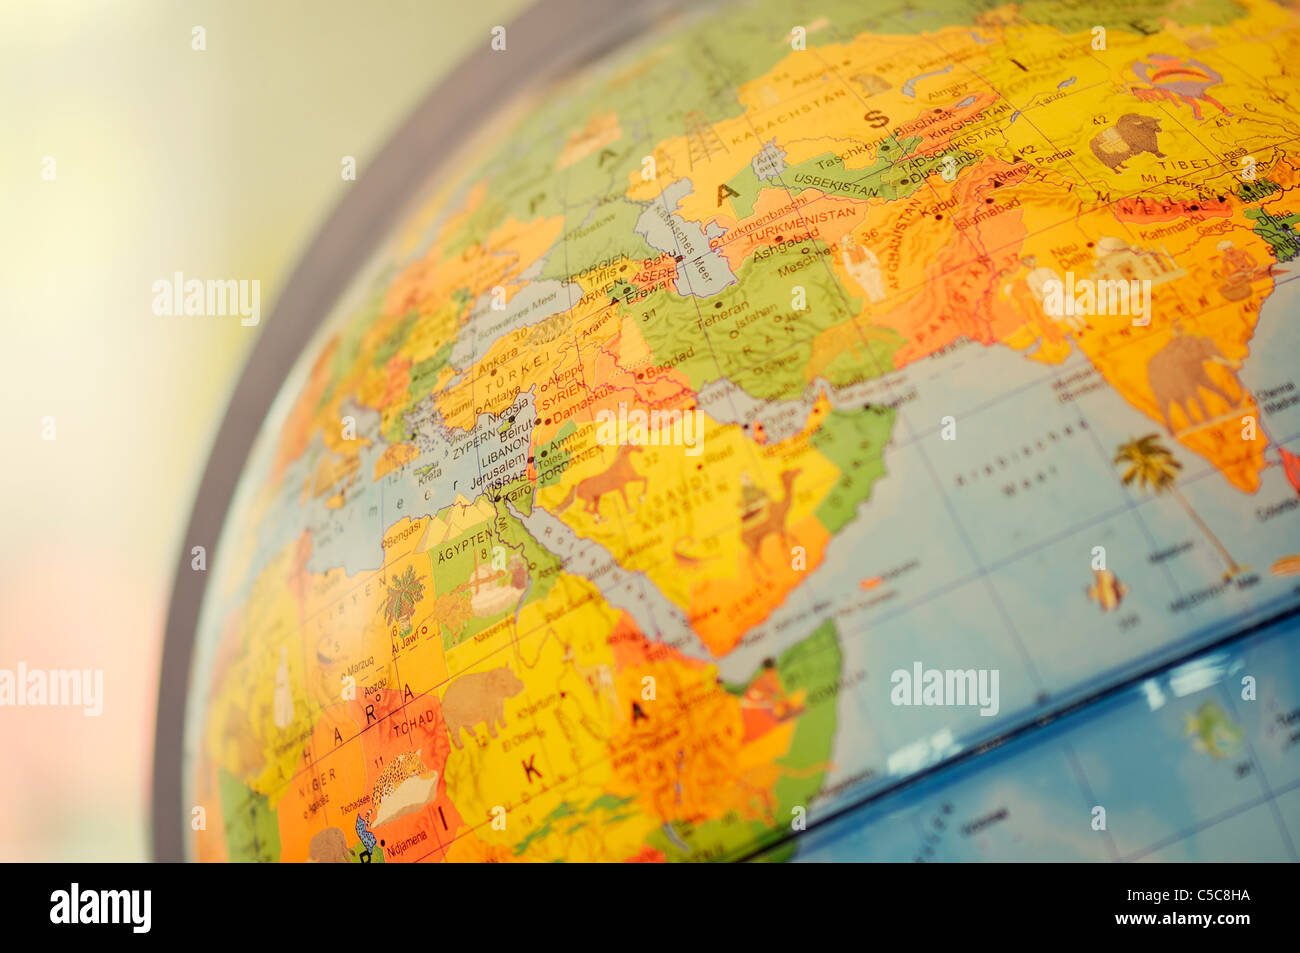 Un close-up de Globe de bureau sur table ont mis l'accent sur le Moyen-Orient. Photo Stock